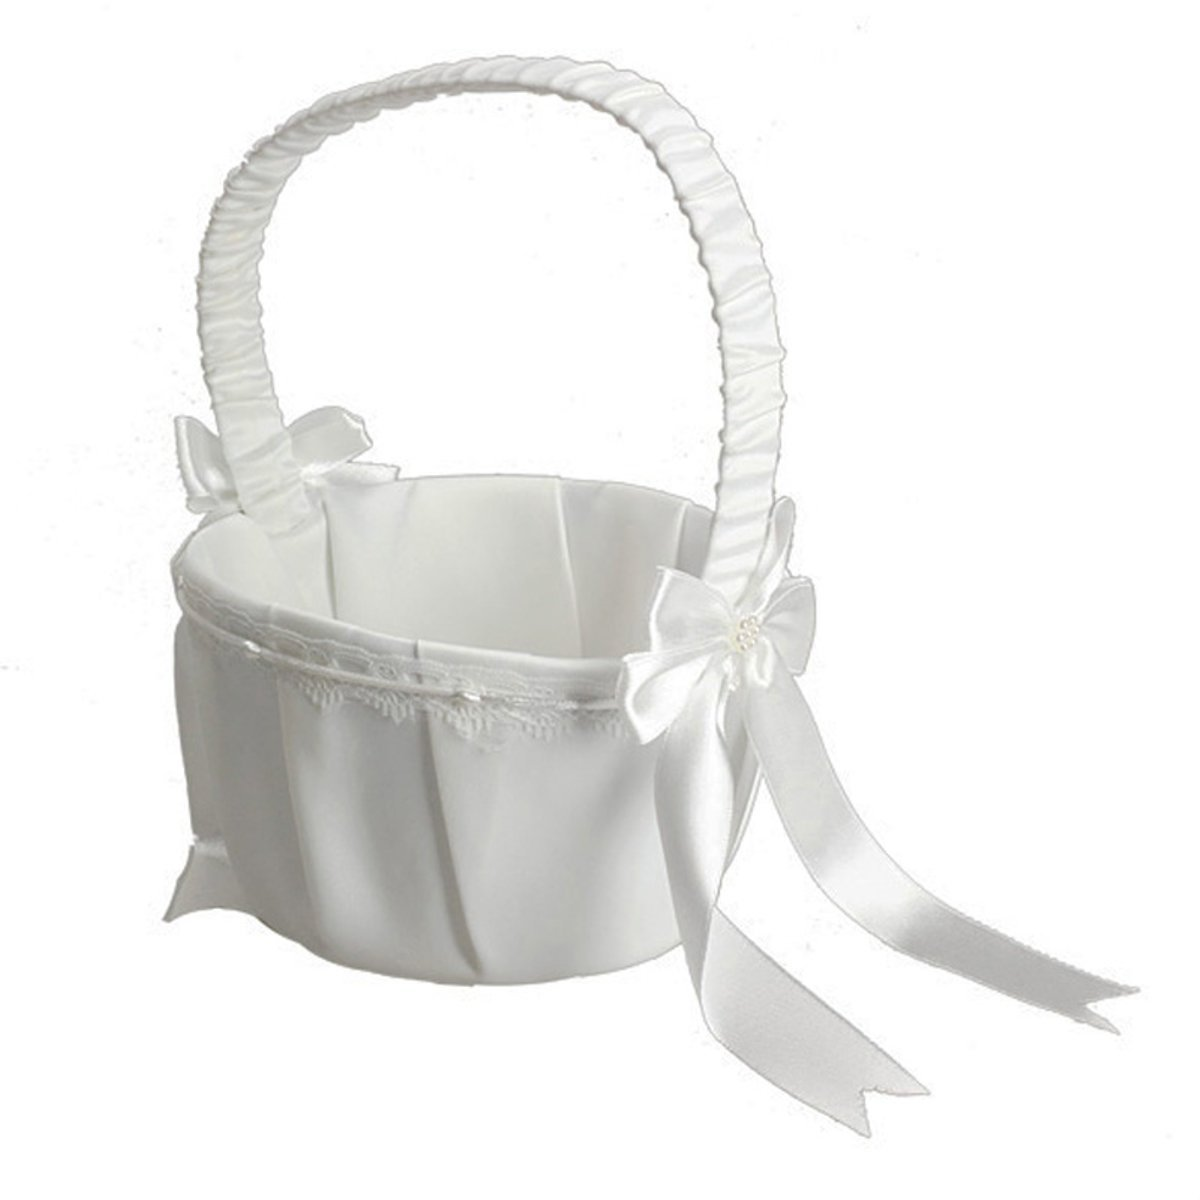 Tacoli White Ivory Bow Wedding Blower Basket Ceremony Festive Party Love Case Satin Flower Girl Basket for Wedding Party Supplies